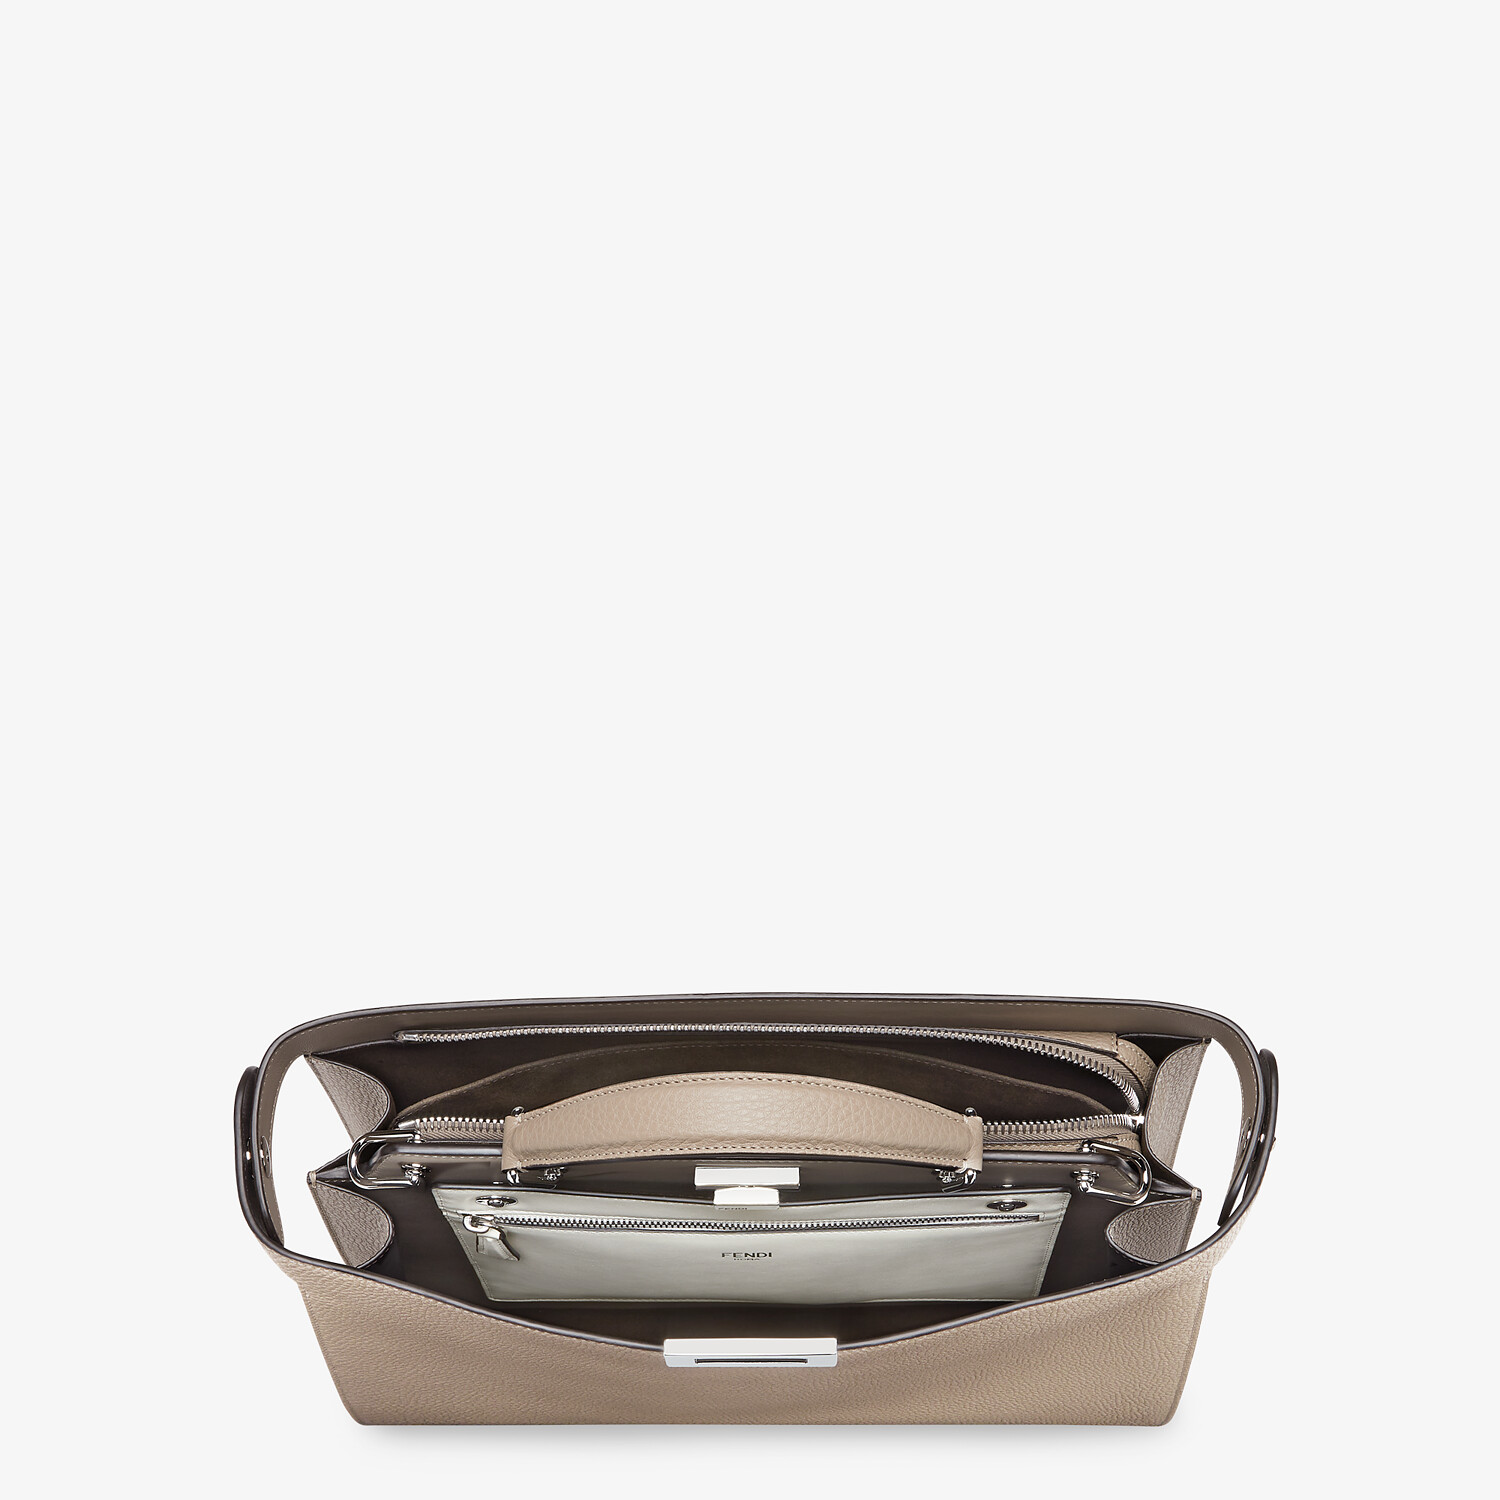 FENDI PEEKABOO ISEEU MEDIUM - Beige leather bag - view 5 detail